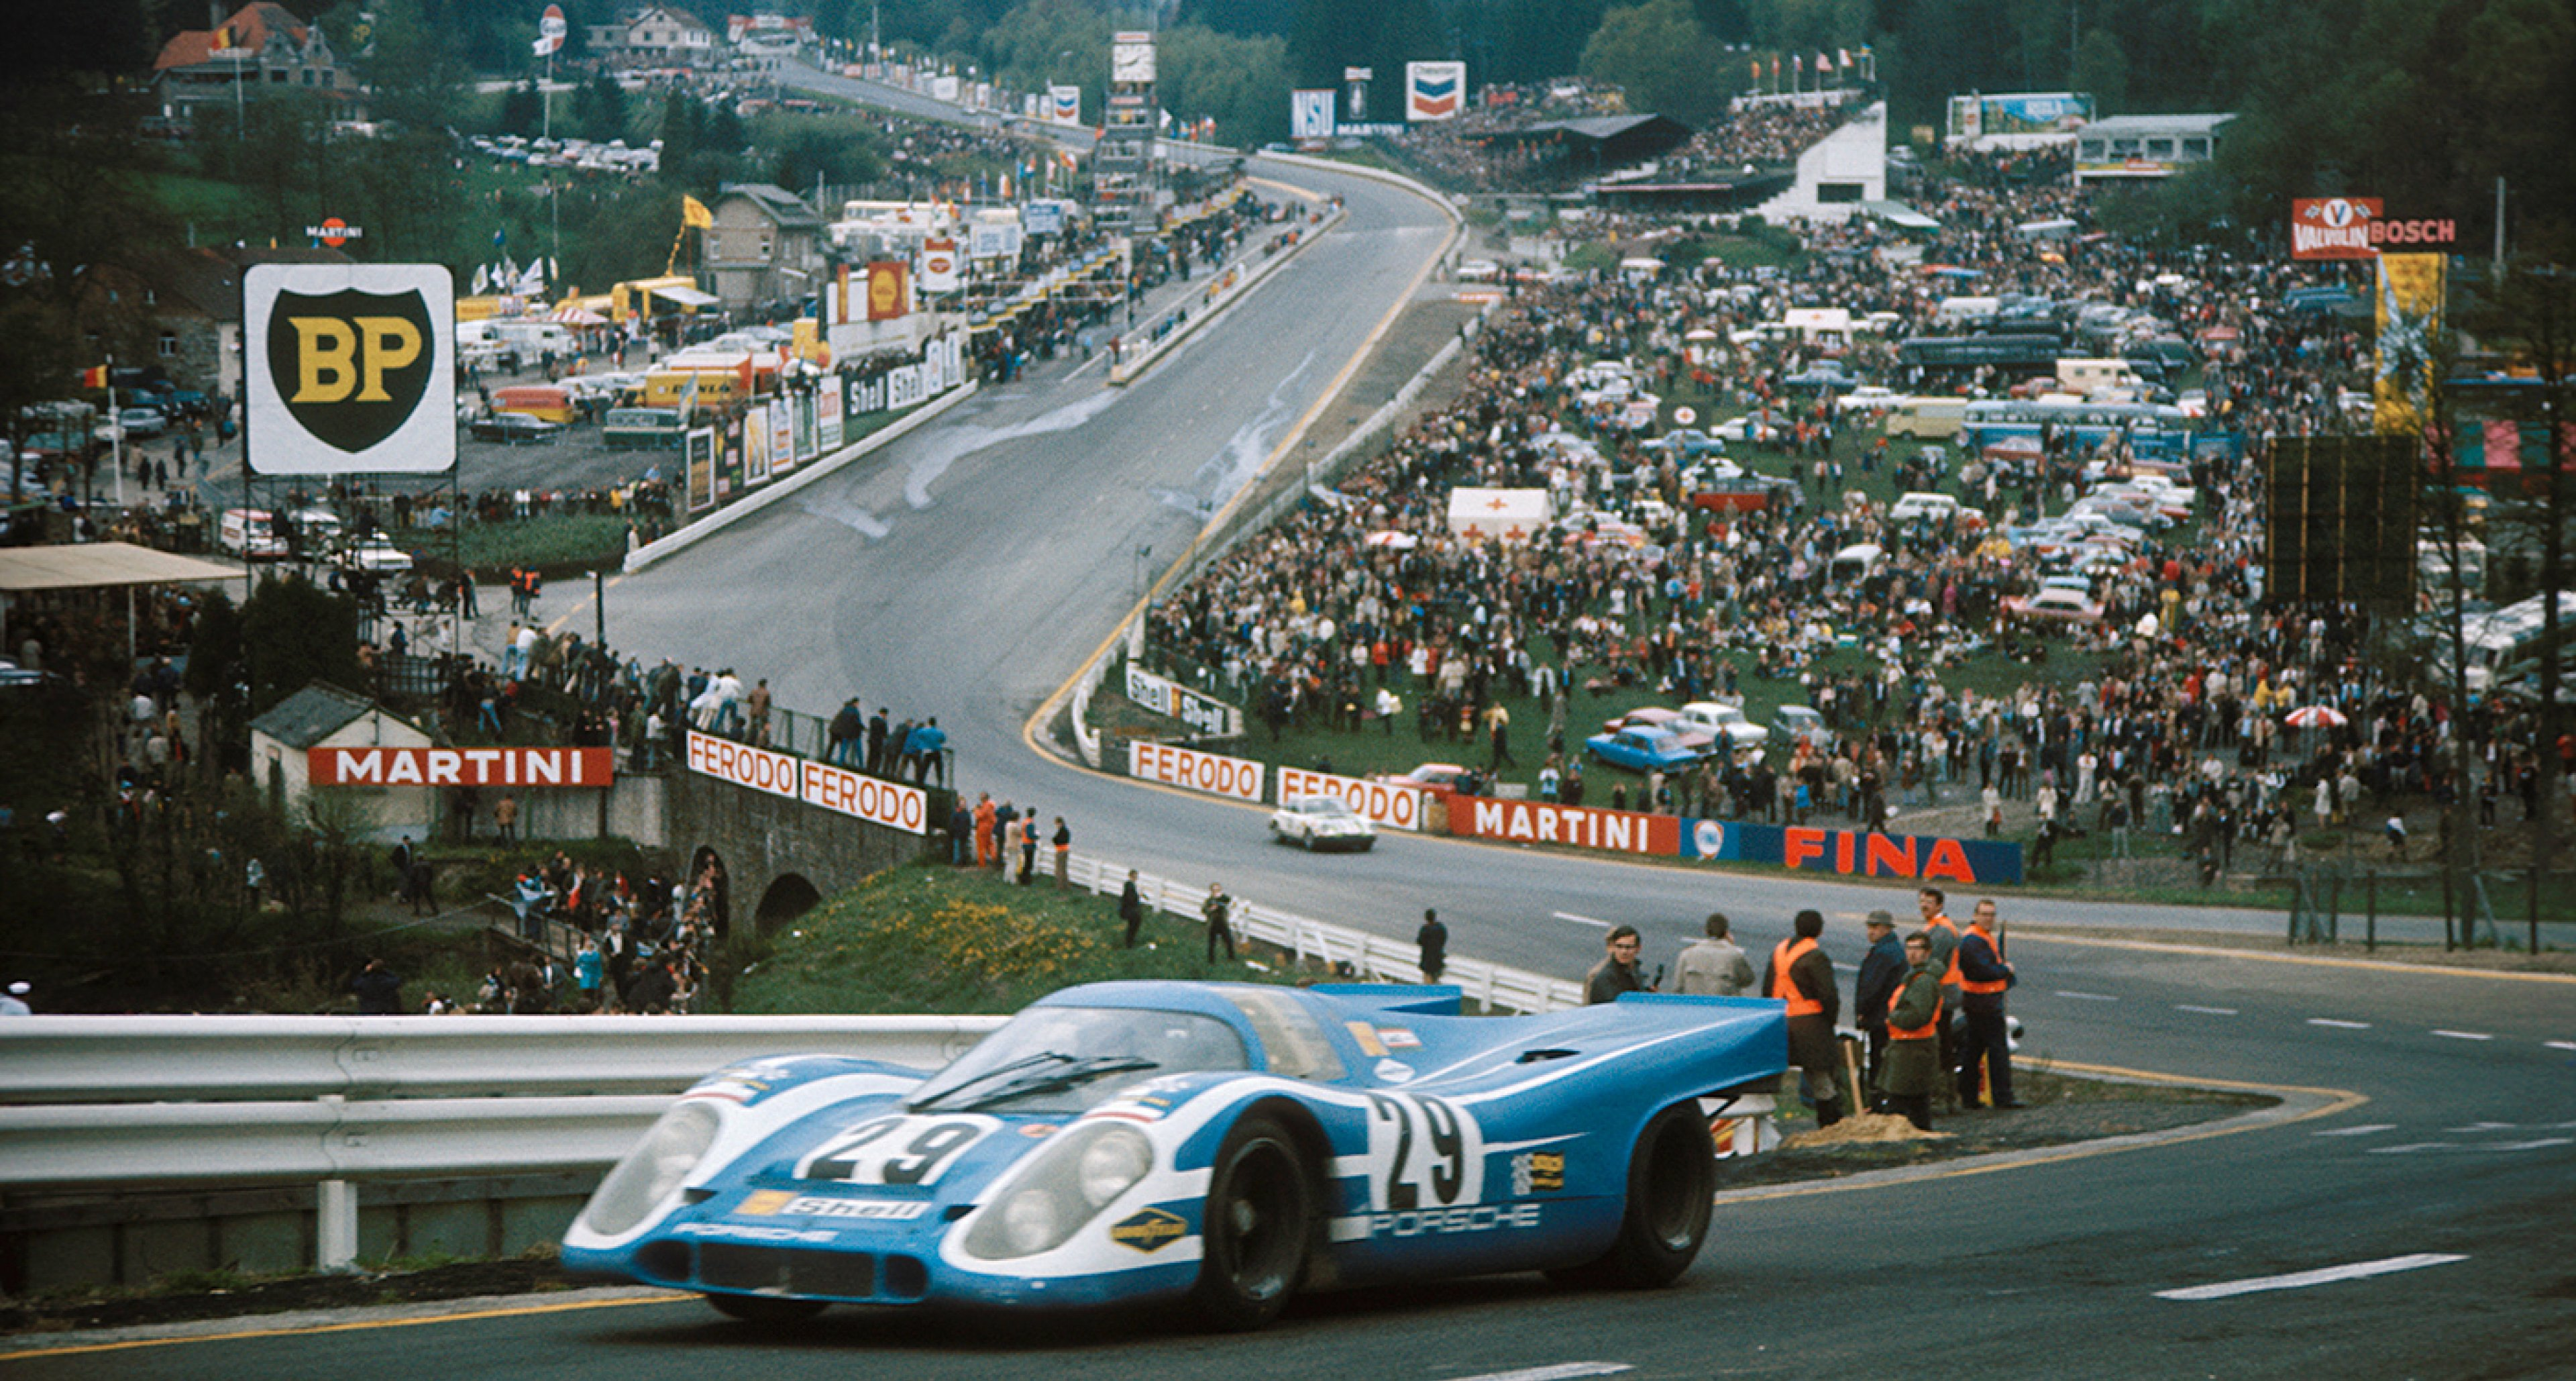 A Porsche 917K roars through Eau Rouge, finishing 6th, 1000 km Spa 1970, Spa-Francorchamps, Belgium, 17 May 1970. (Photo by Rainer W. Schlegelmilch/Getty Images)